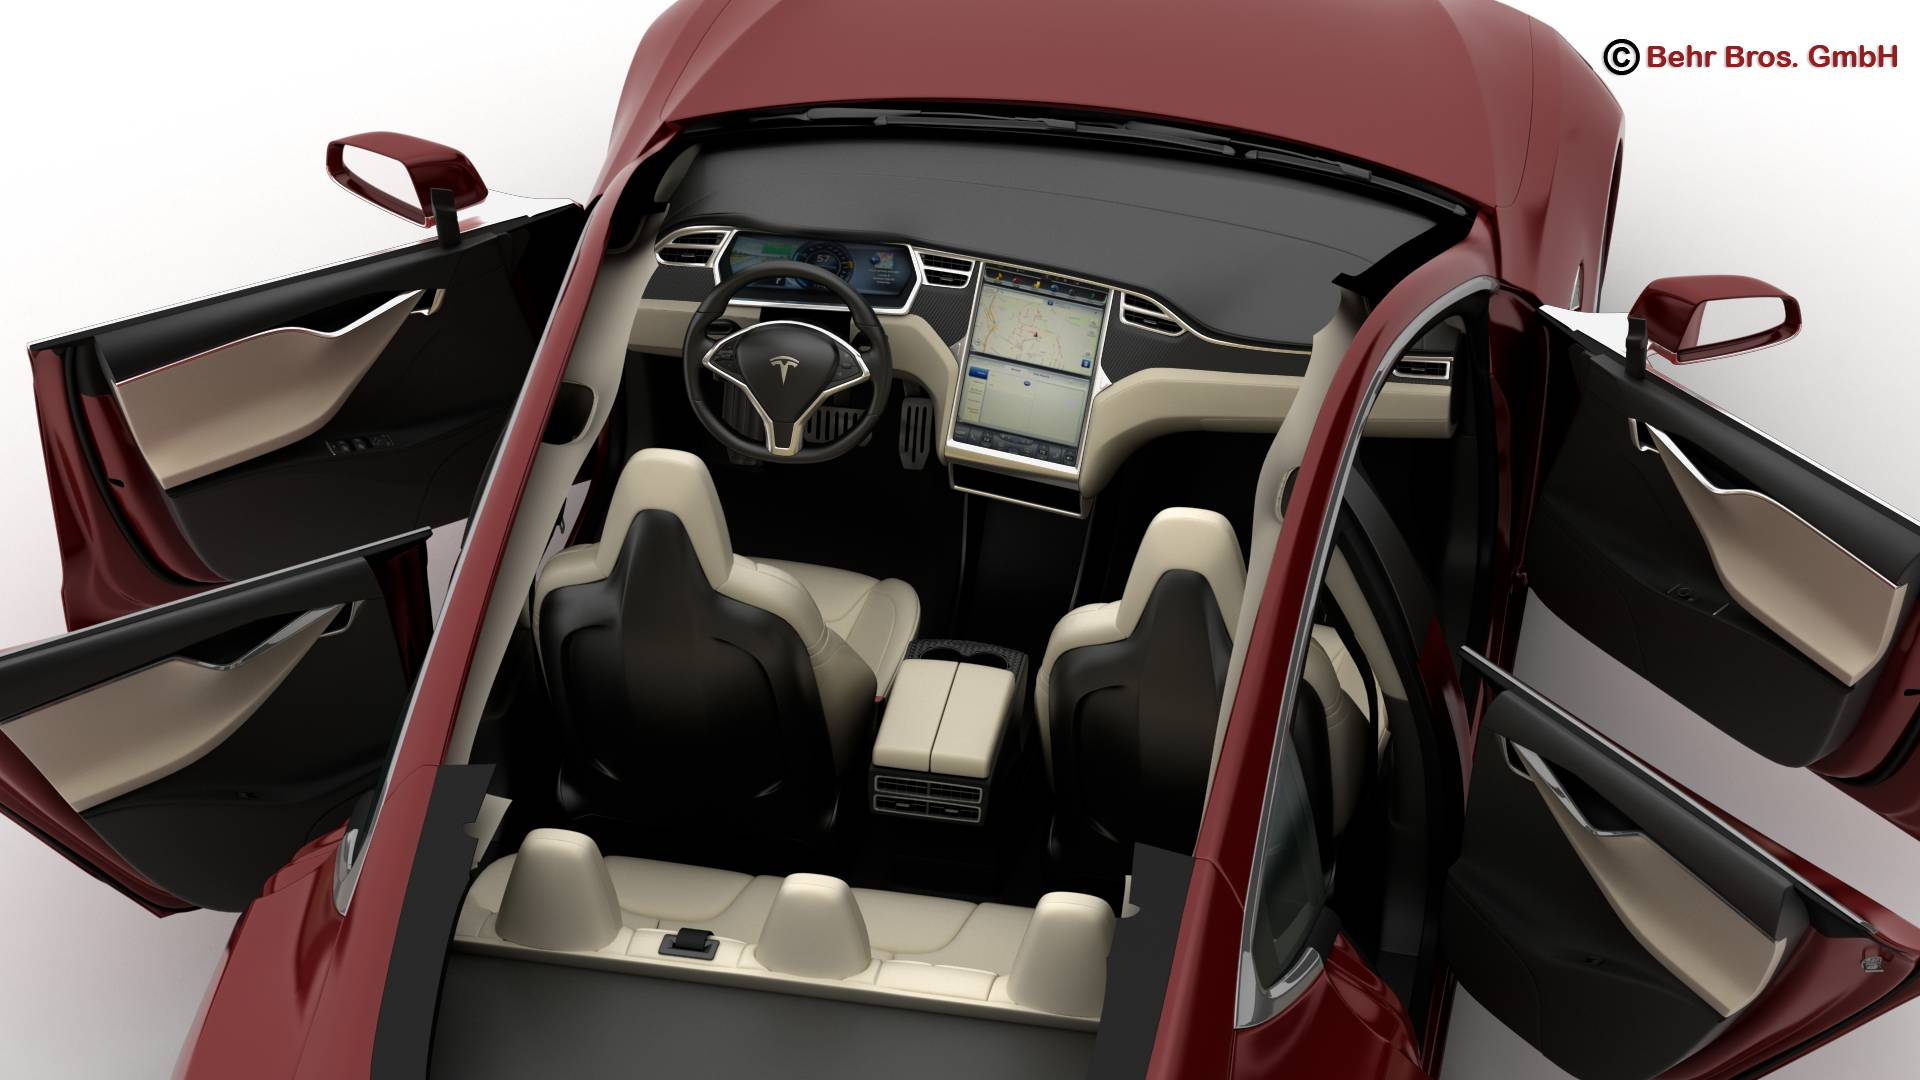 tesla model s 2015 3d model 3ds max fbx c4d lwo ma mb obj 217617